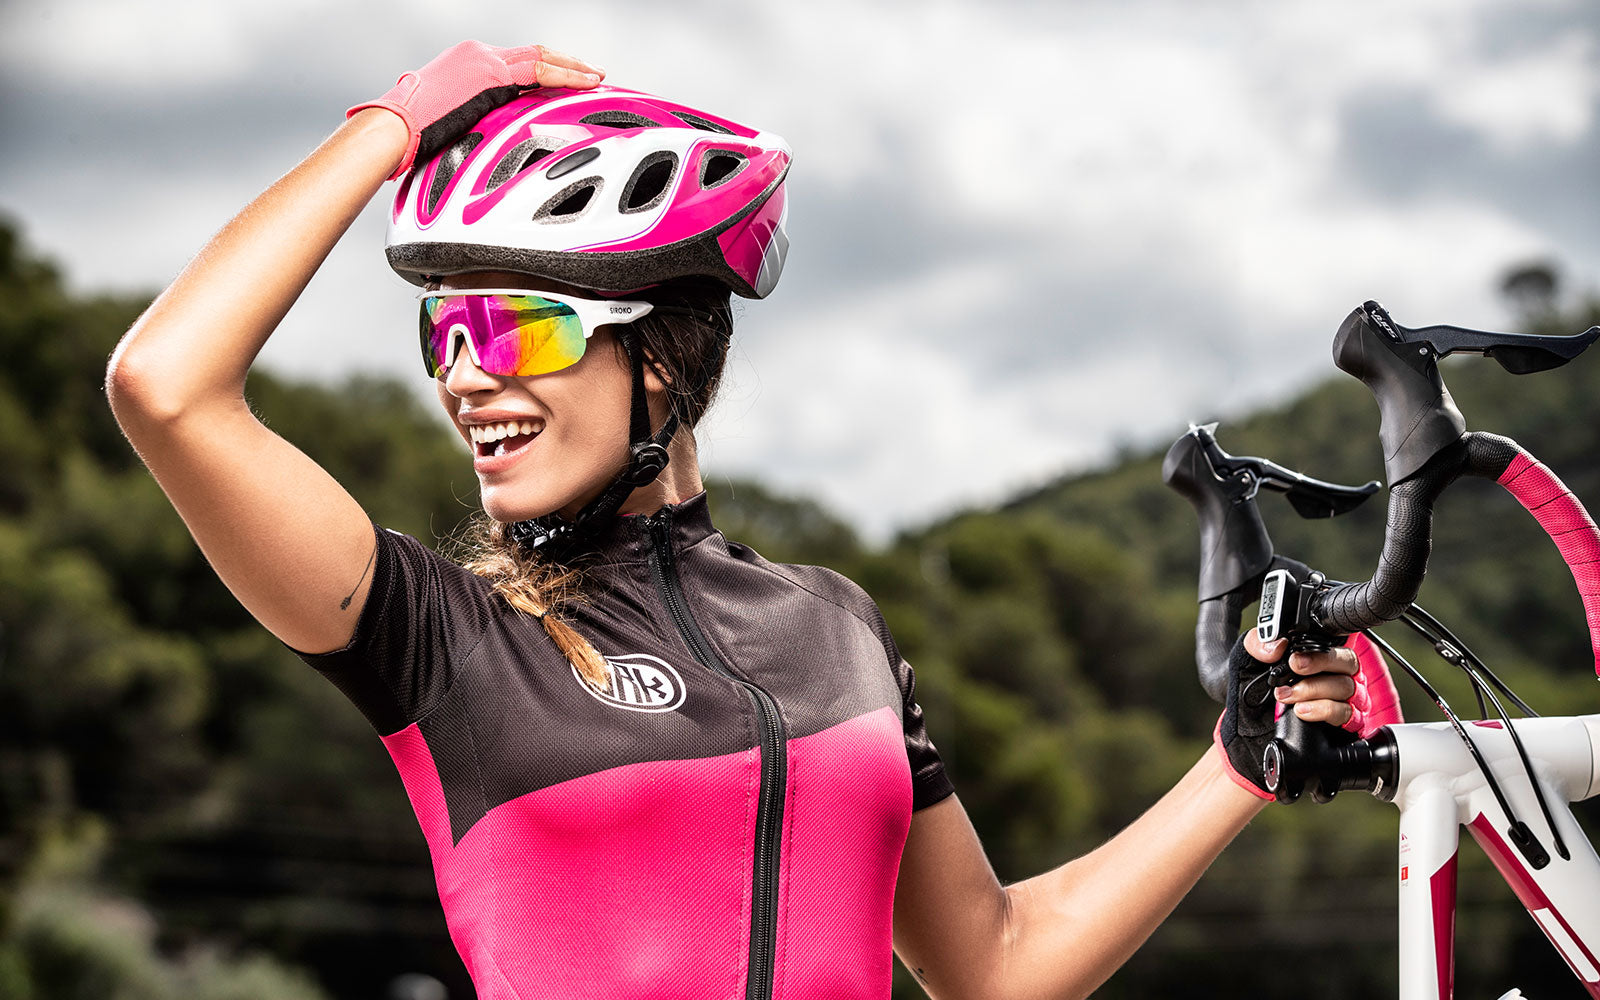 Cyclists body female what do